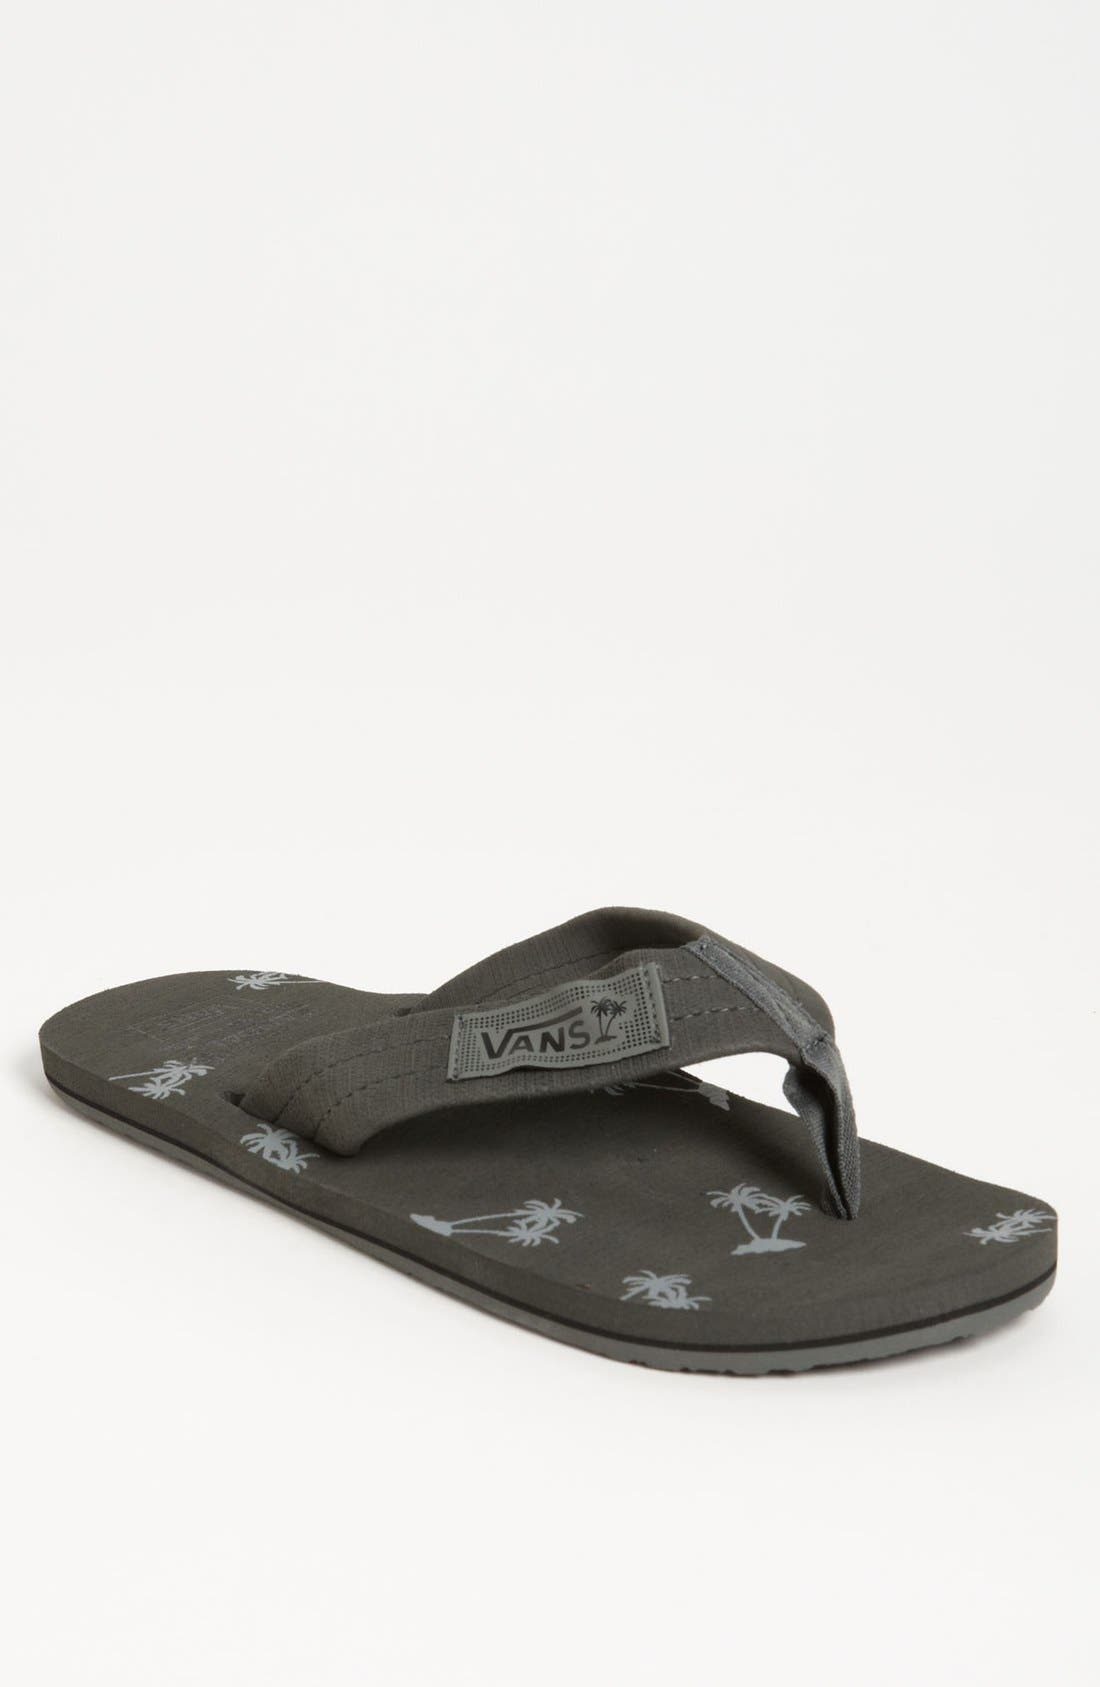 Alternate Image 1 Selected - Vans 'Thresher' Flip Flop (Men)